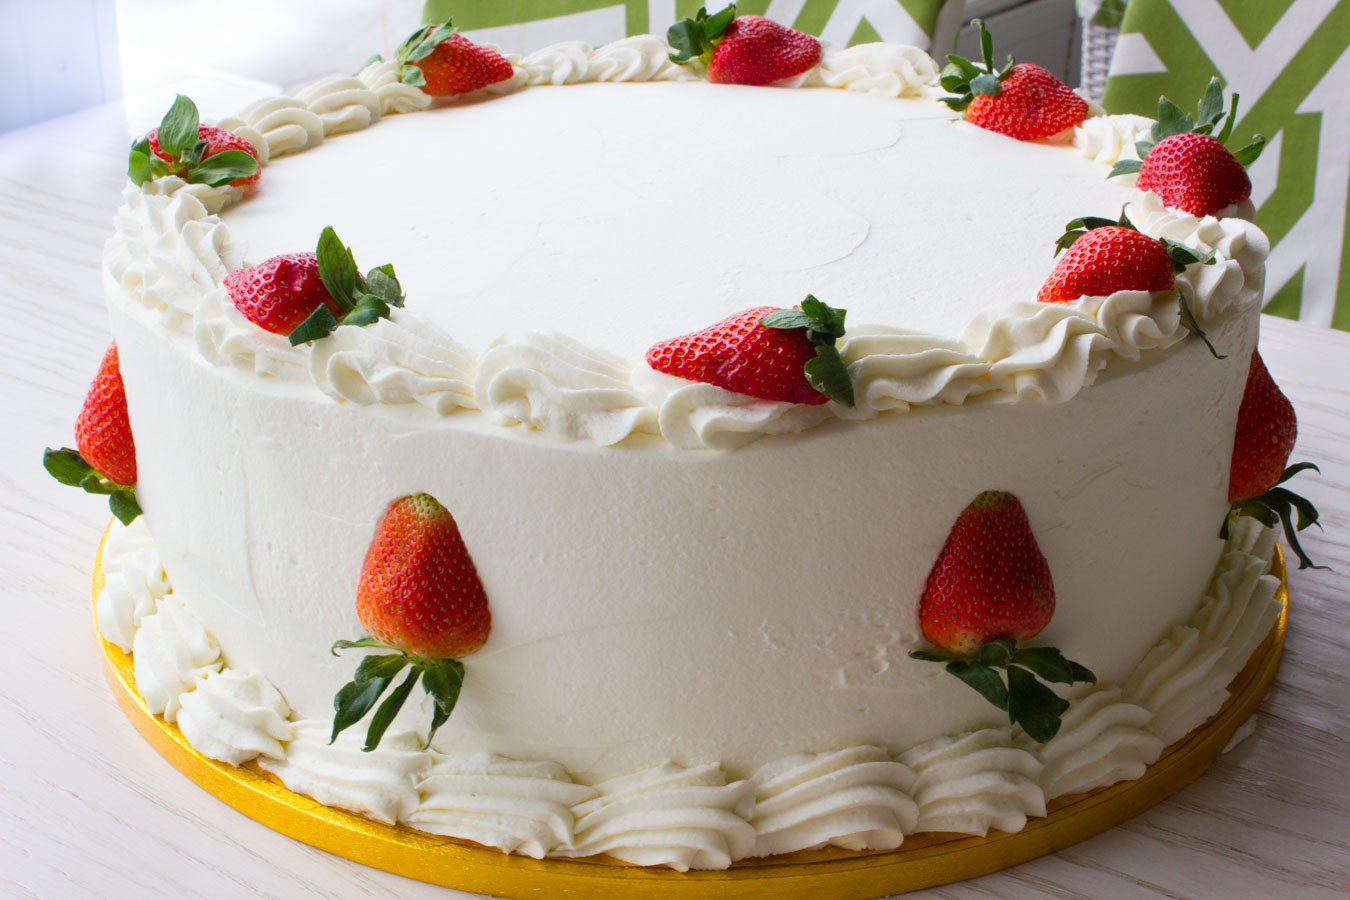 Strawberry Wedding Cake 16inch 2-1